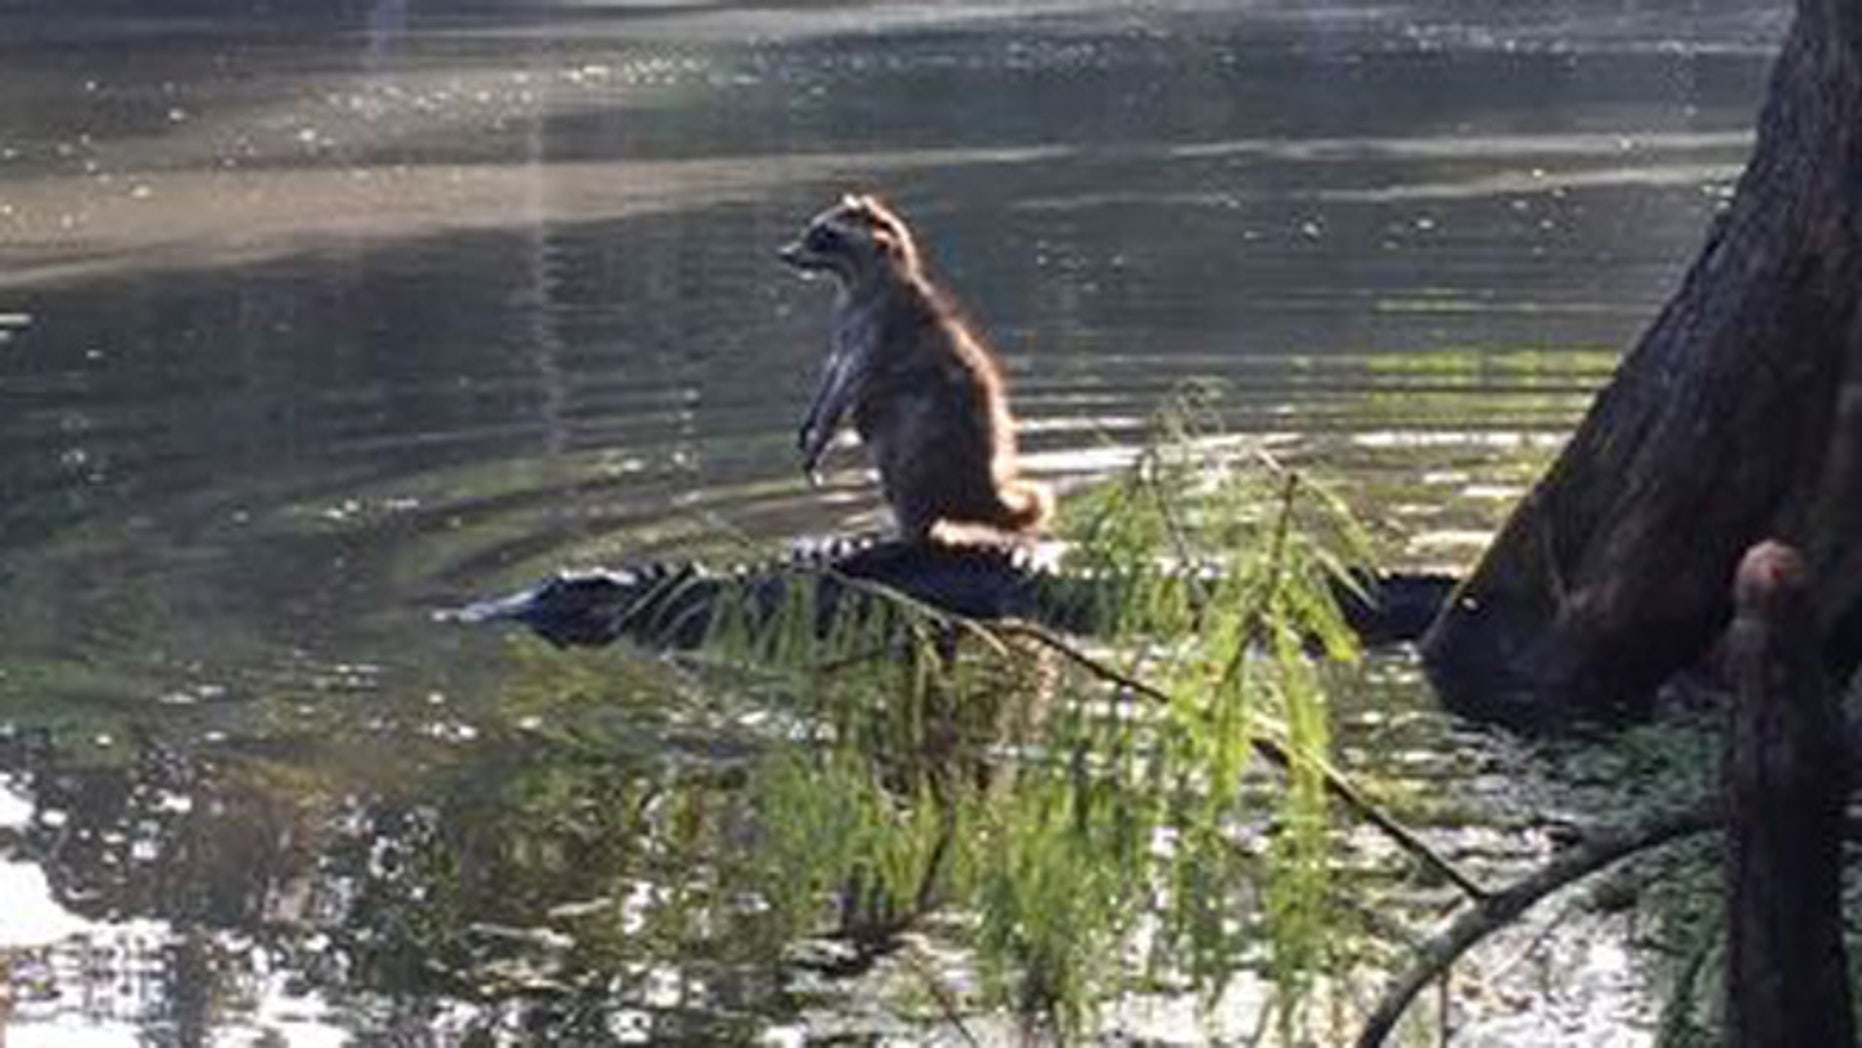 Richard Jones says he captured this photo of a raccoon resting on an alligator Saturday in Ocala, Fla.